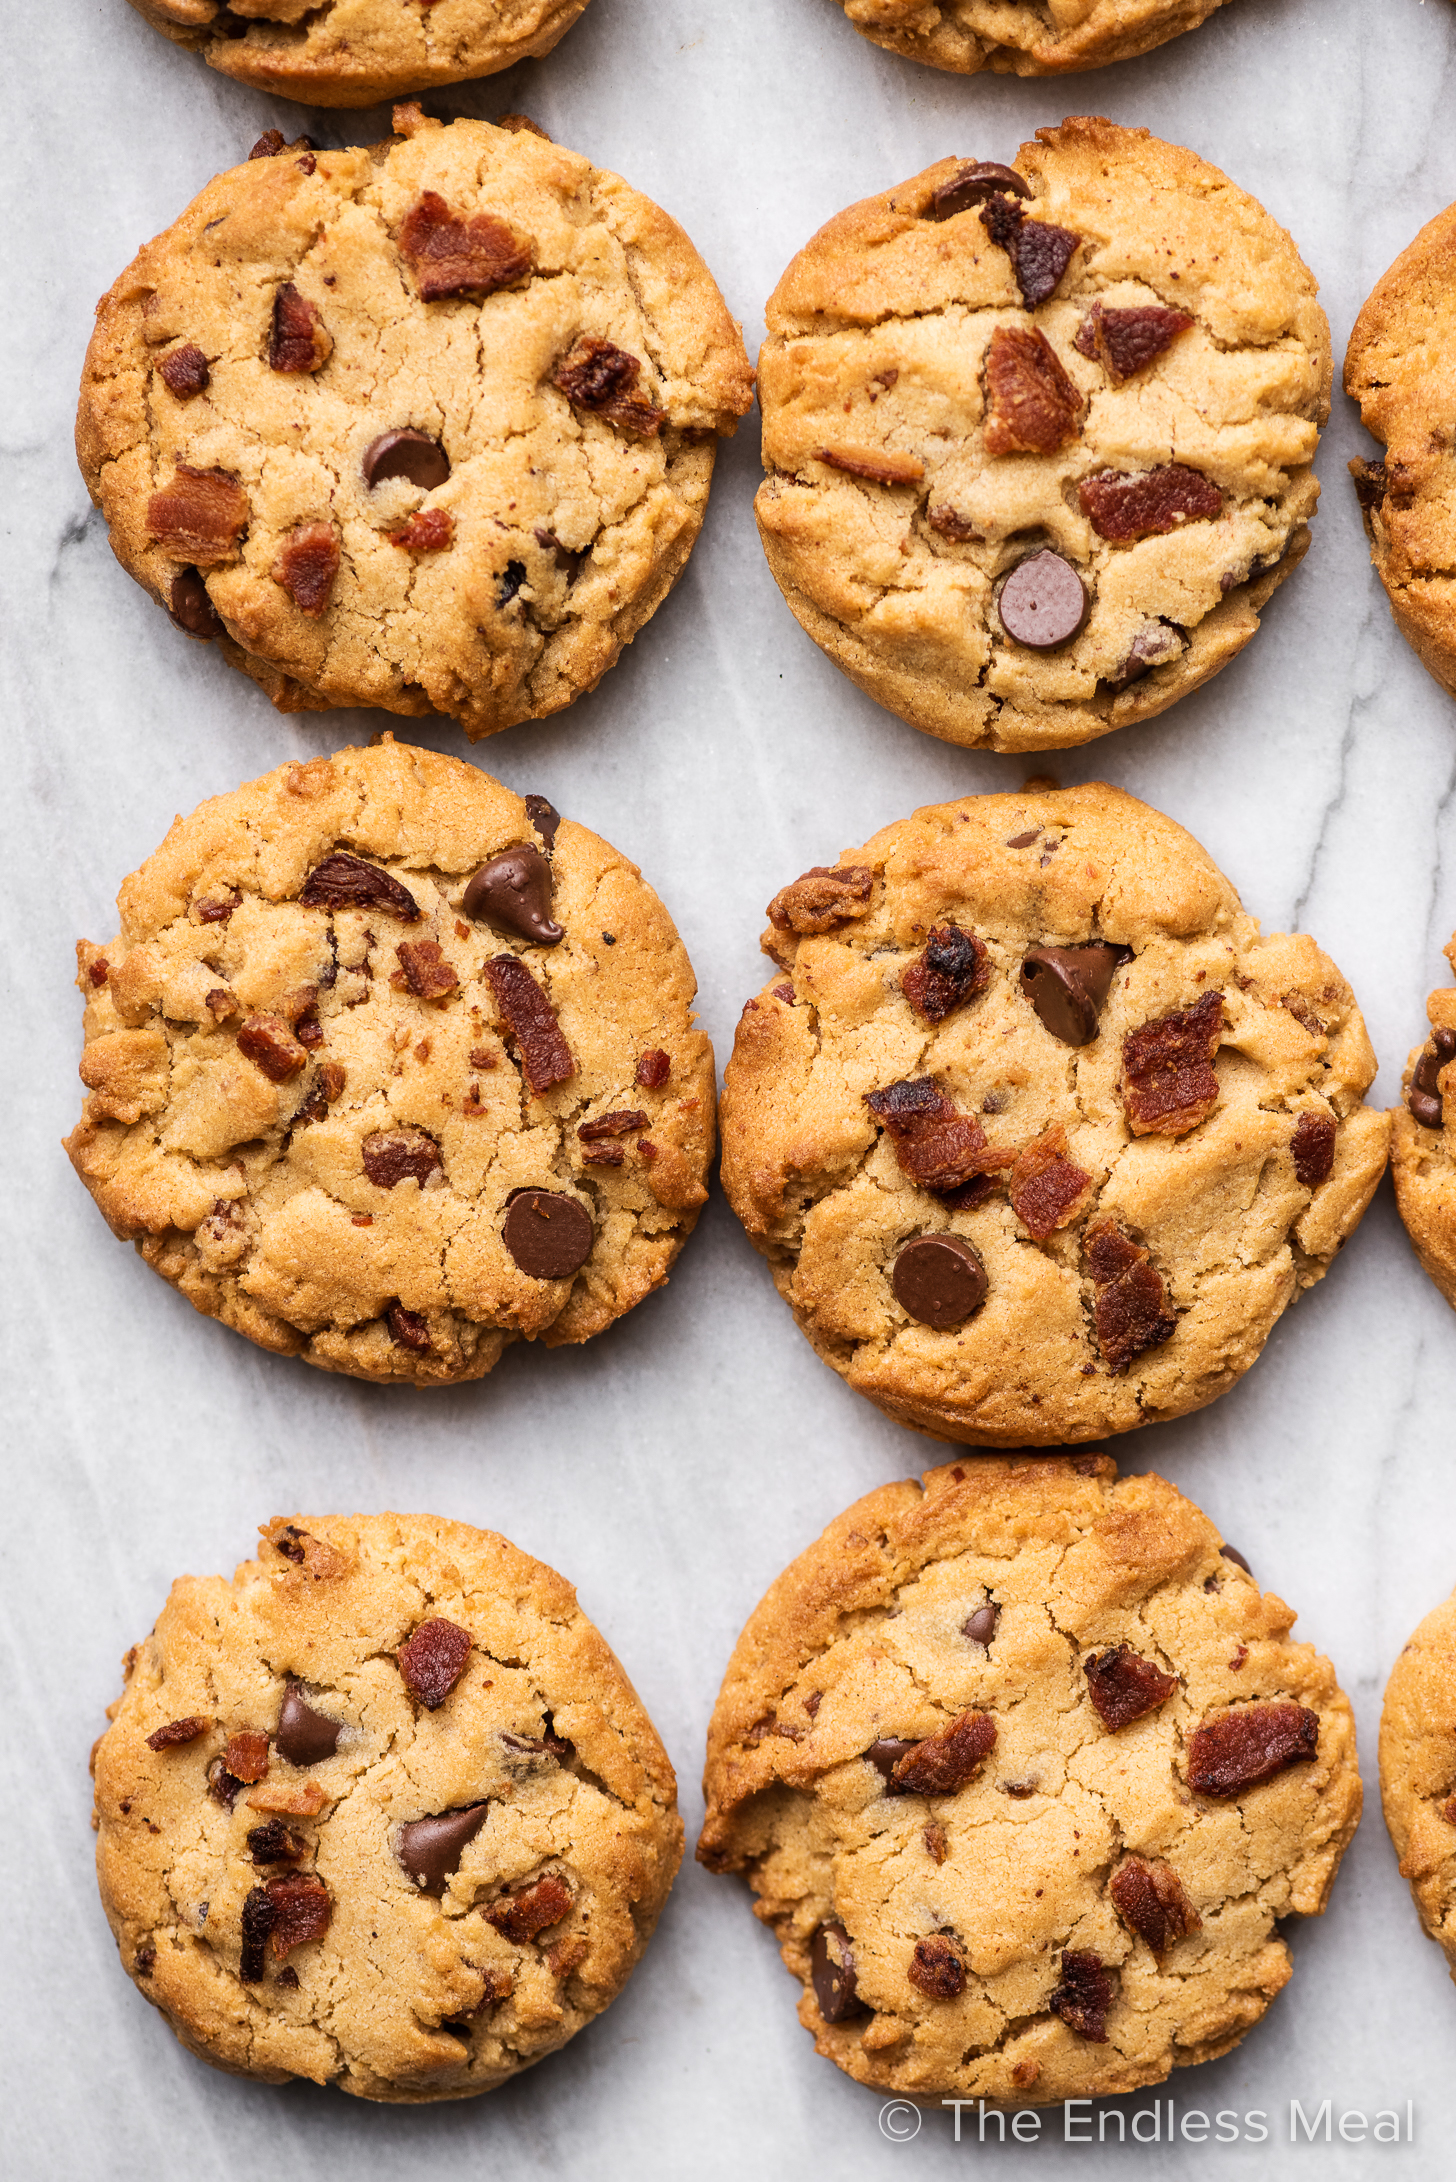 A close up of Bourbon Bacon Peanut Butter Cookies.